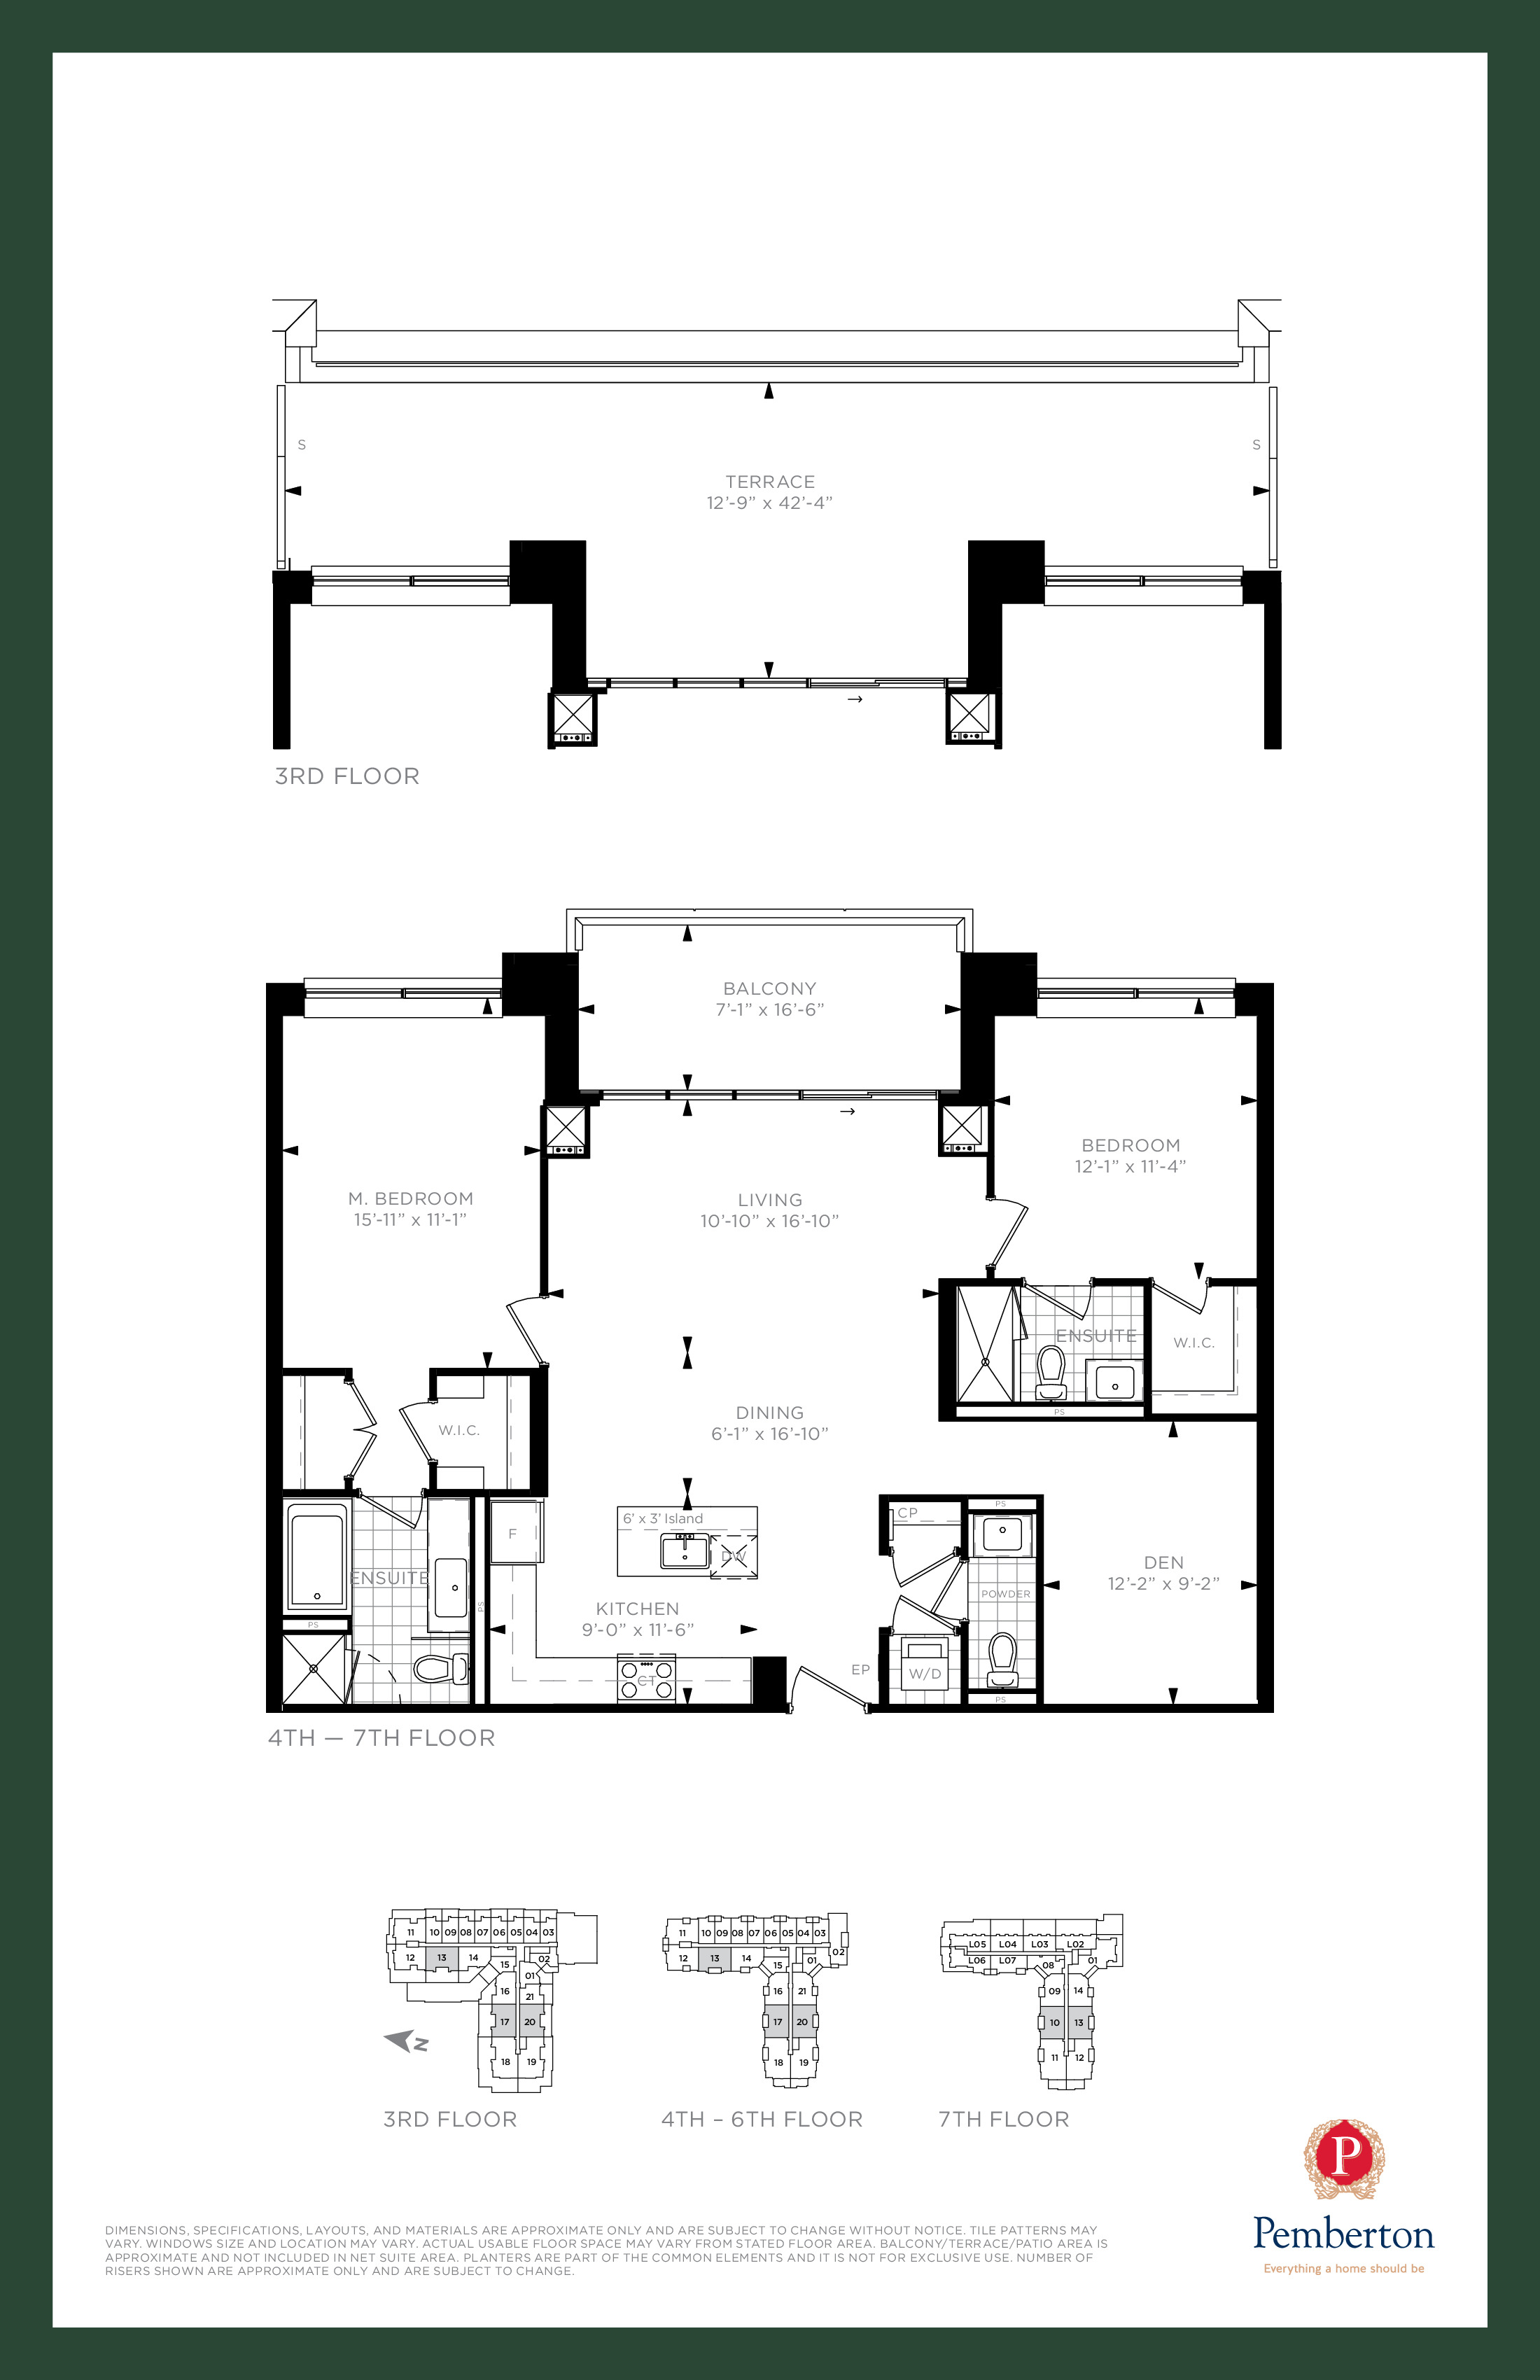 Suite N - Building A Floor Plan at 9th & Main Condos + Towns - 1290 sq.ft